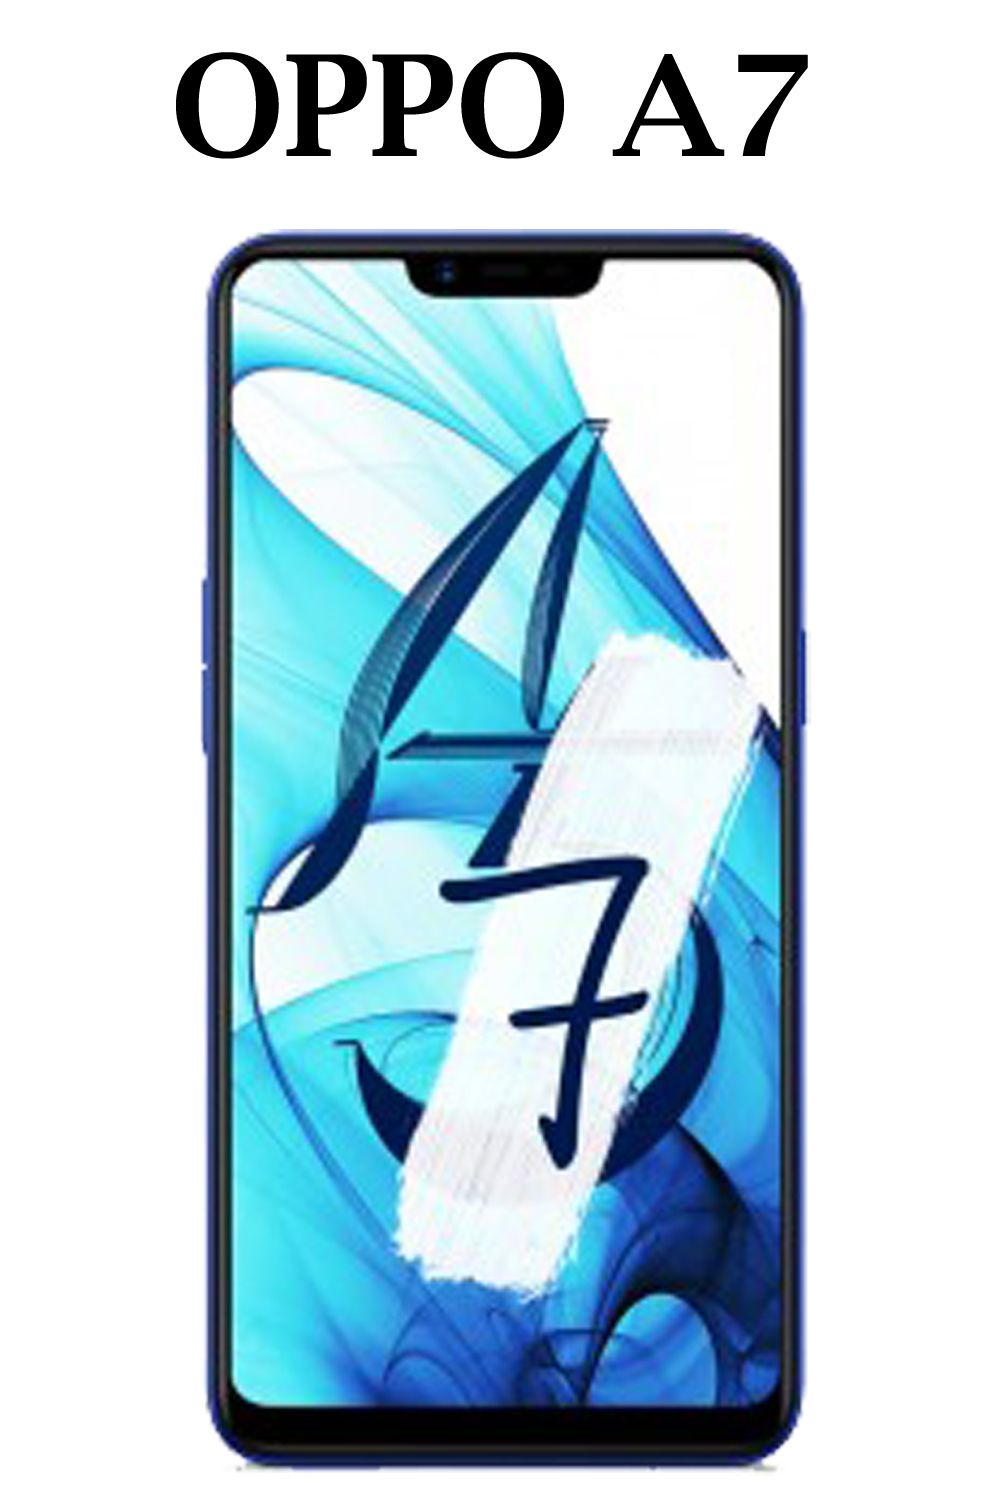 Oppo A7 | Android Smartphones | Android smartphone